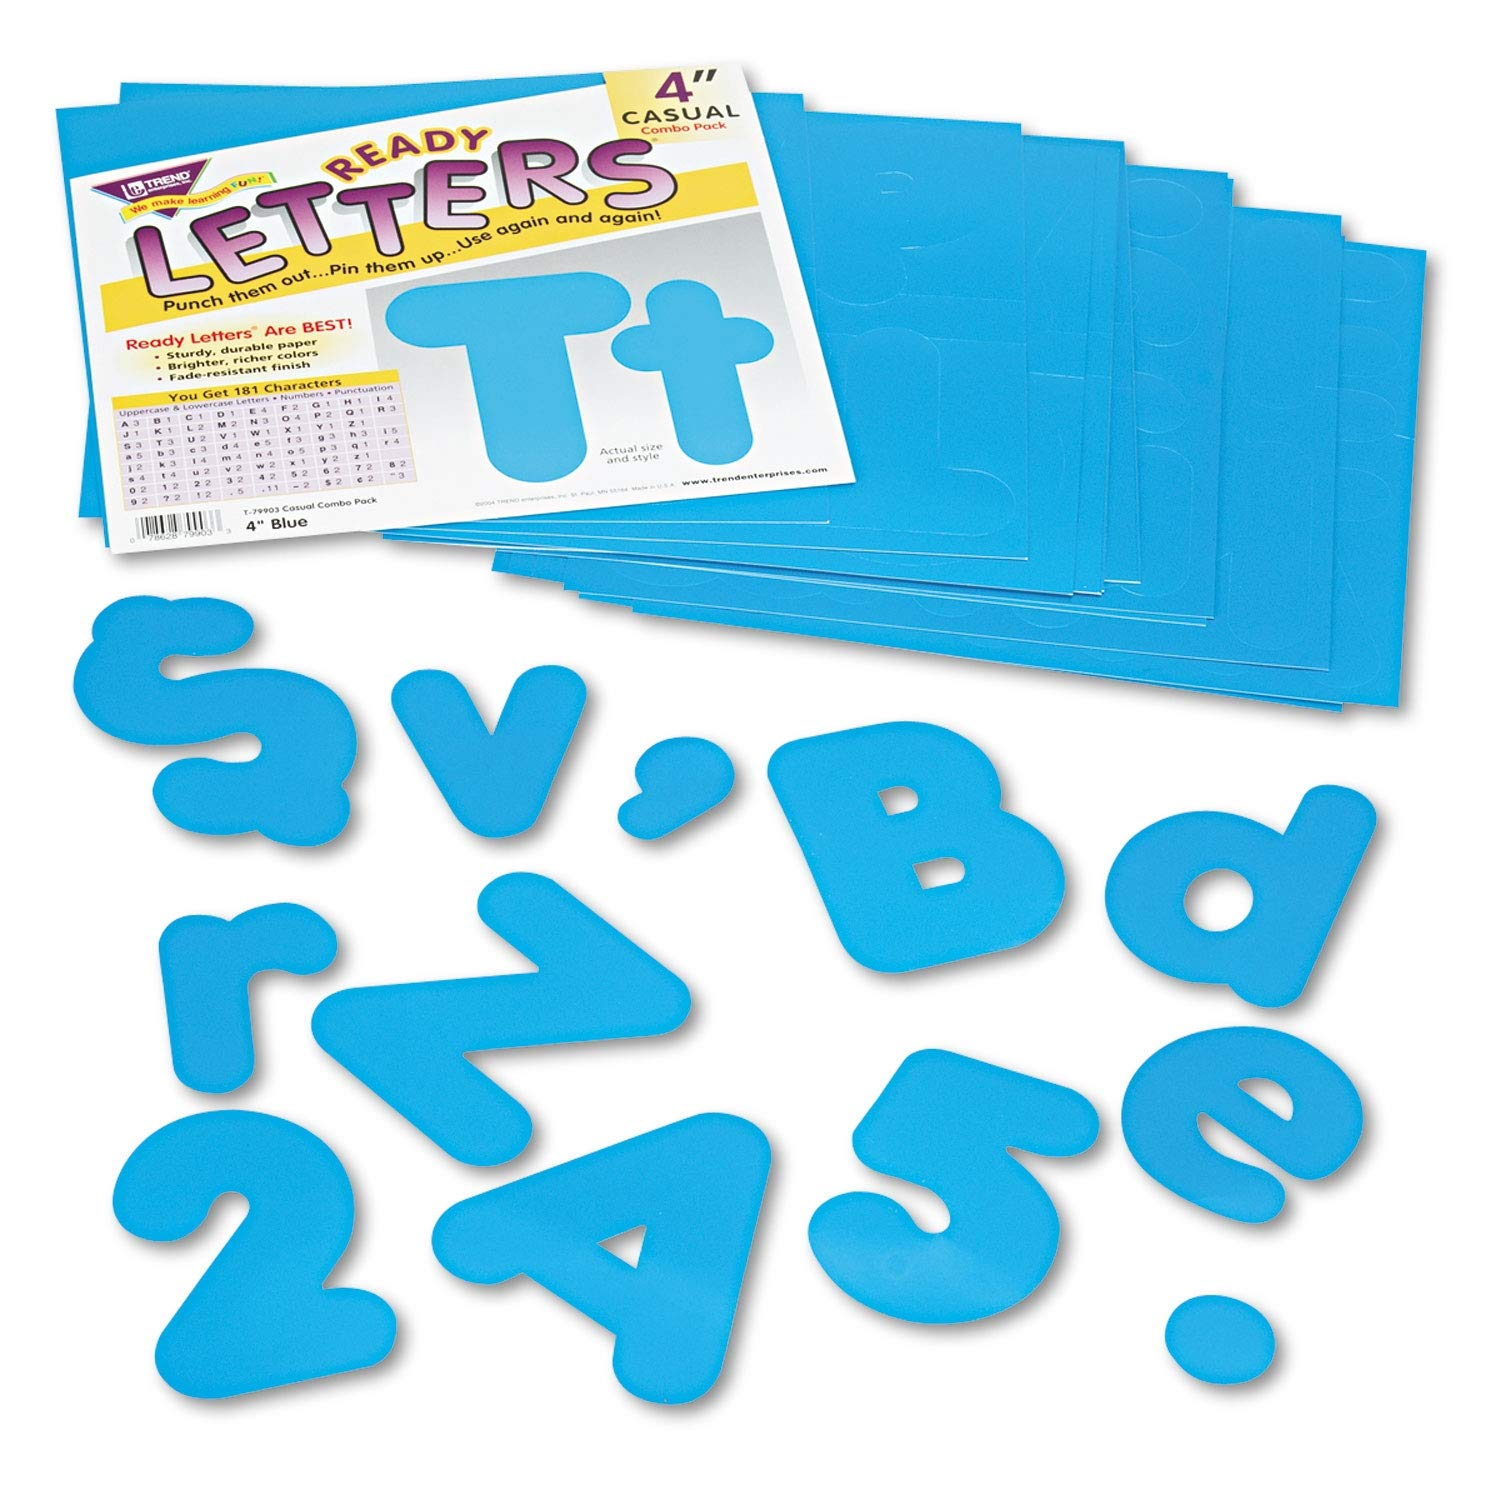 TREND Ready Letters Casual Combo Set, Blue, 4h, 182/Set - T79903 Pack of 2